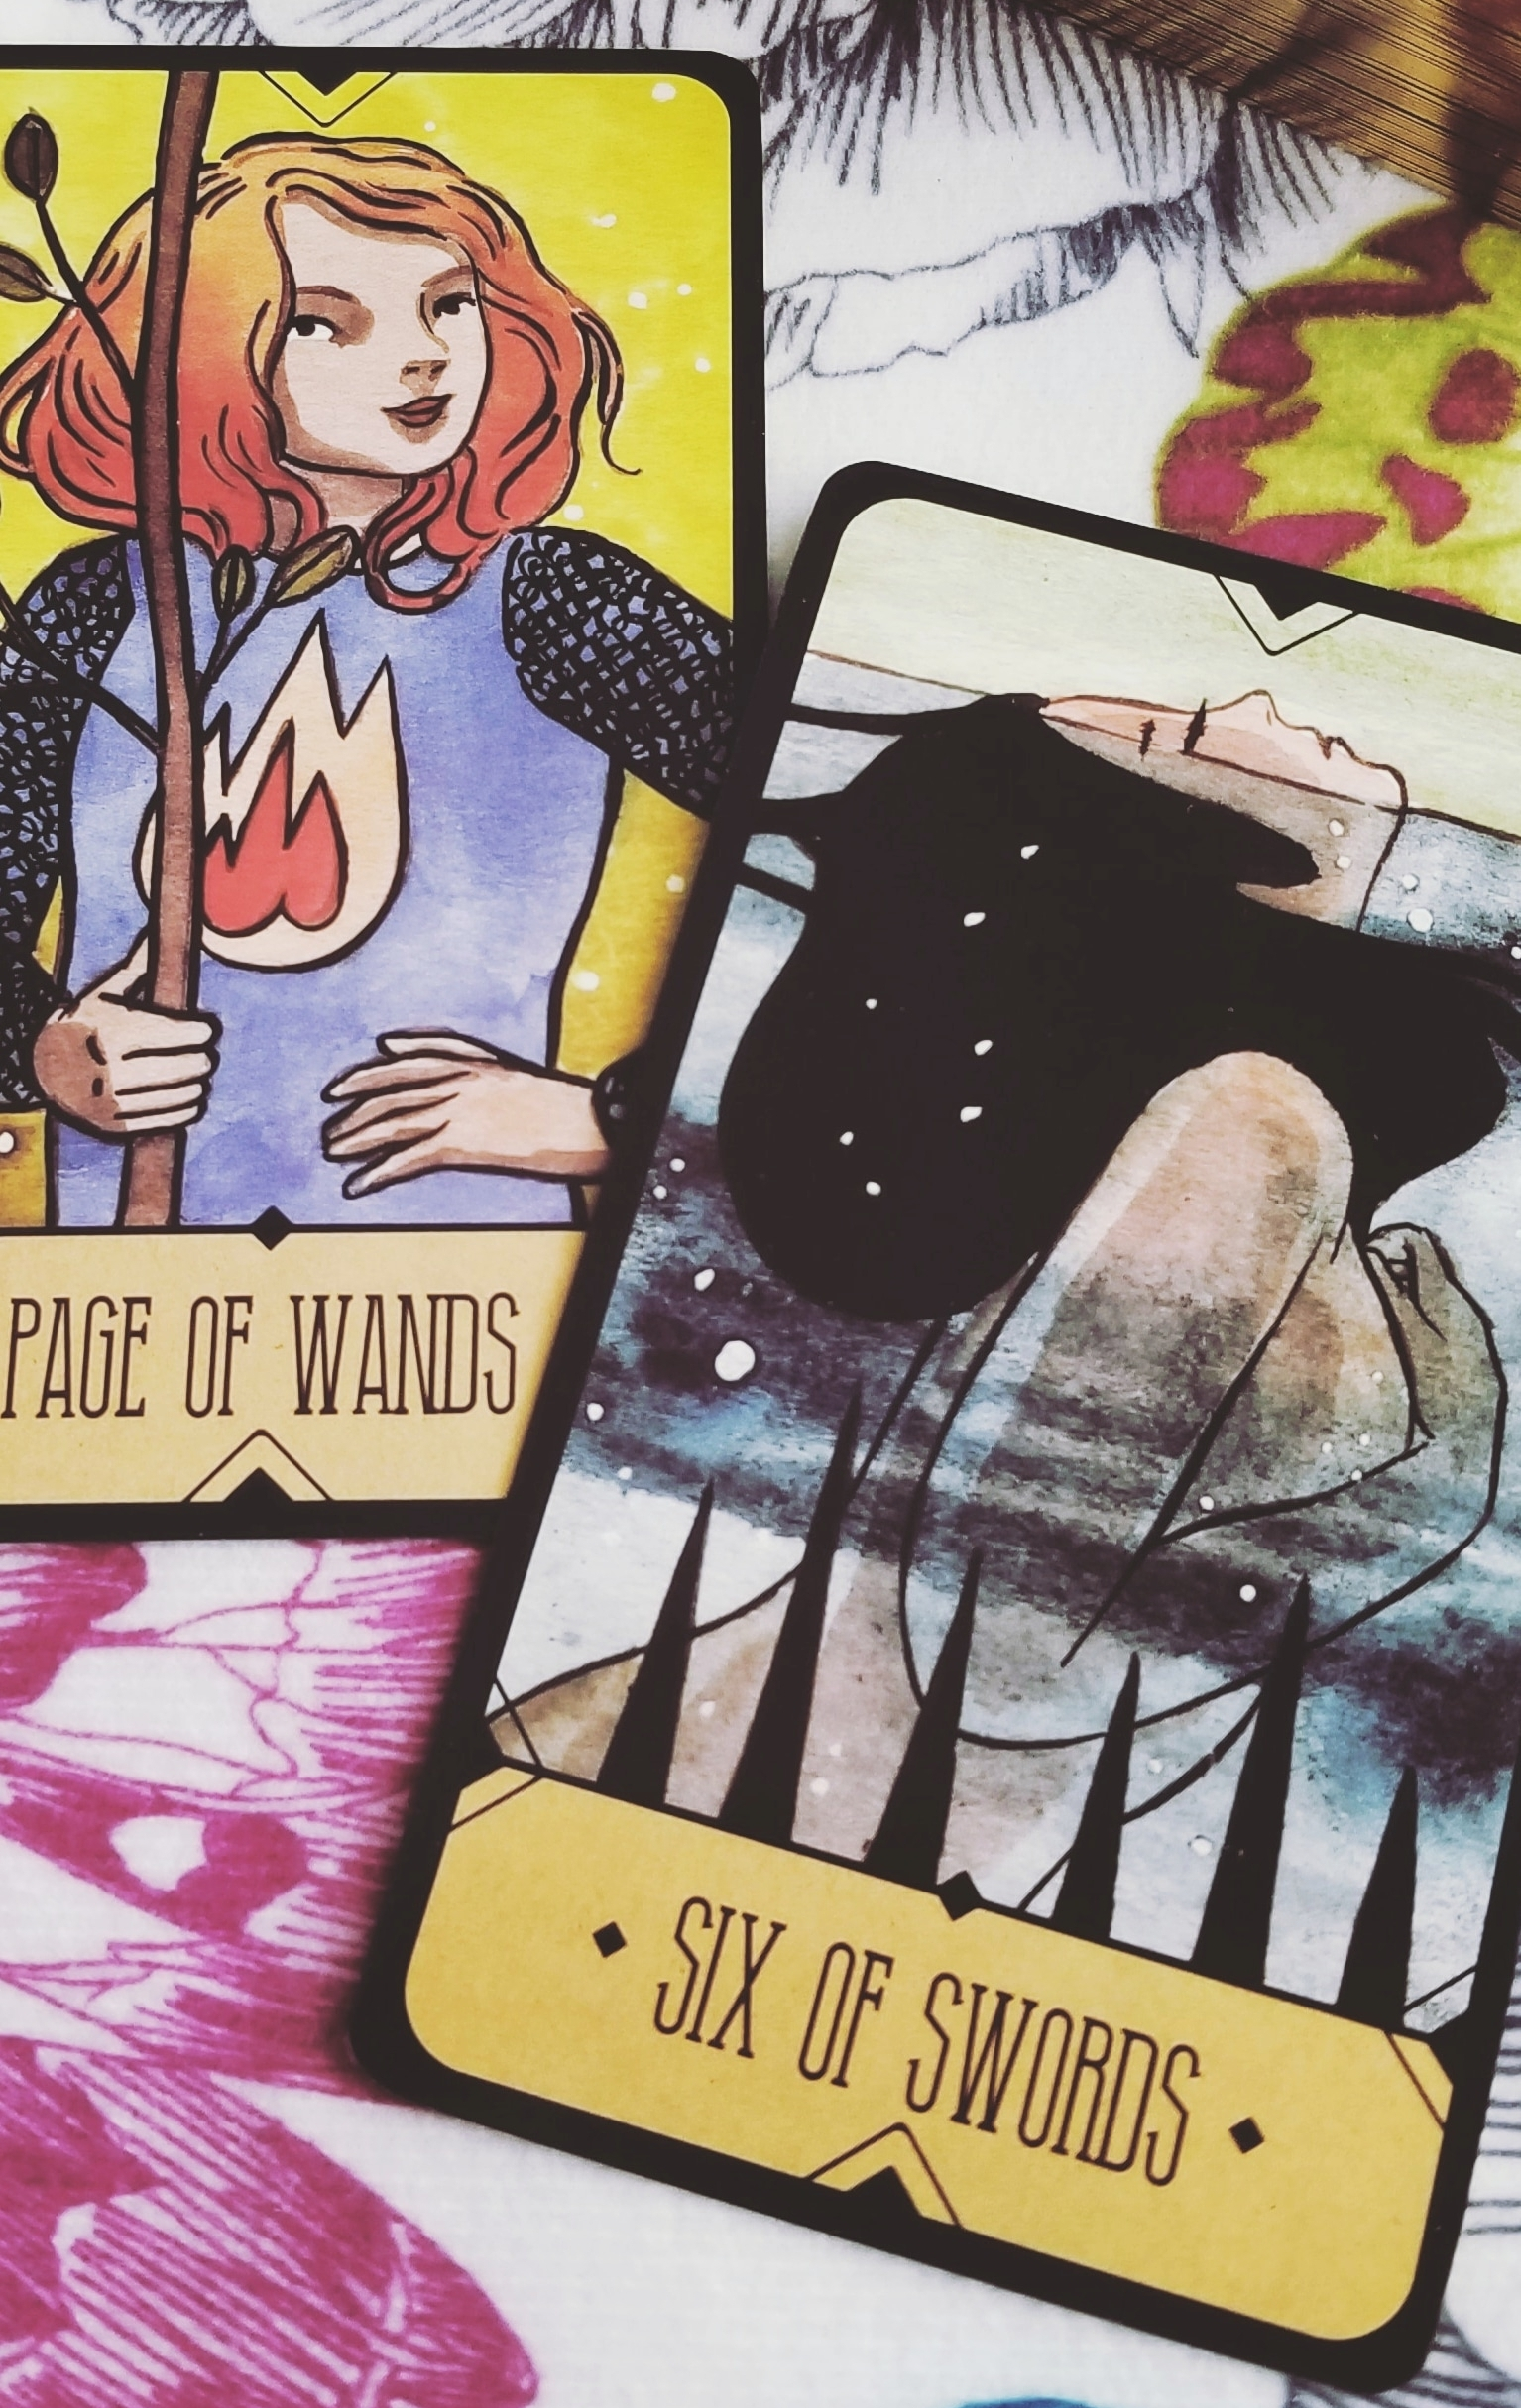 Page of Wands and Six of Swords from the Sasuraibito Tarot